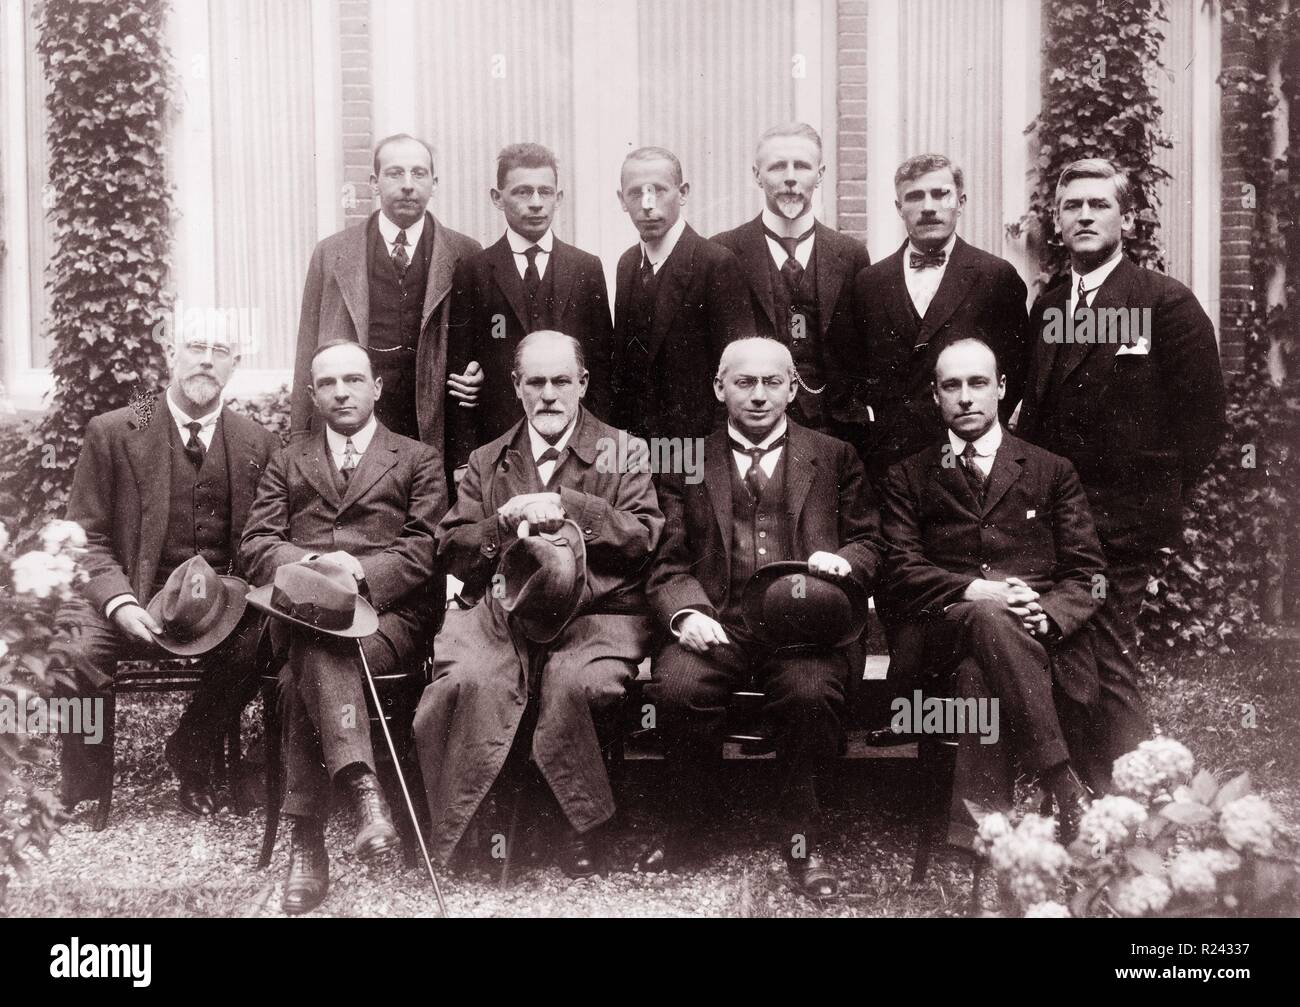 Sigmund Freud with colleagues at the Congress at the Hague. Freud seated (center), Ernest Jones (second from left), Sandor Ferenczi (second from right), and standing (center) Karl Abraham; several unidentified men appear either seated or standing. 1920 - Stock Image